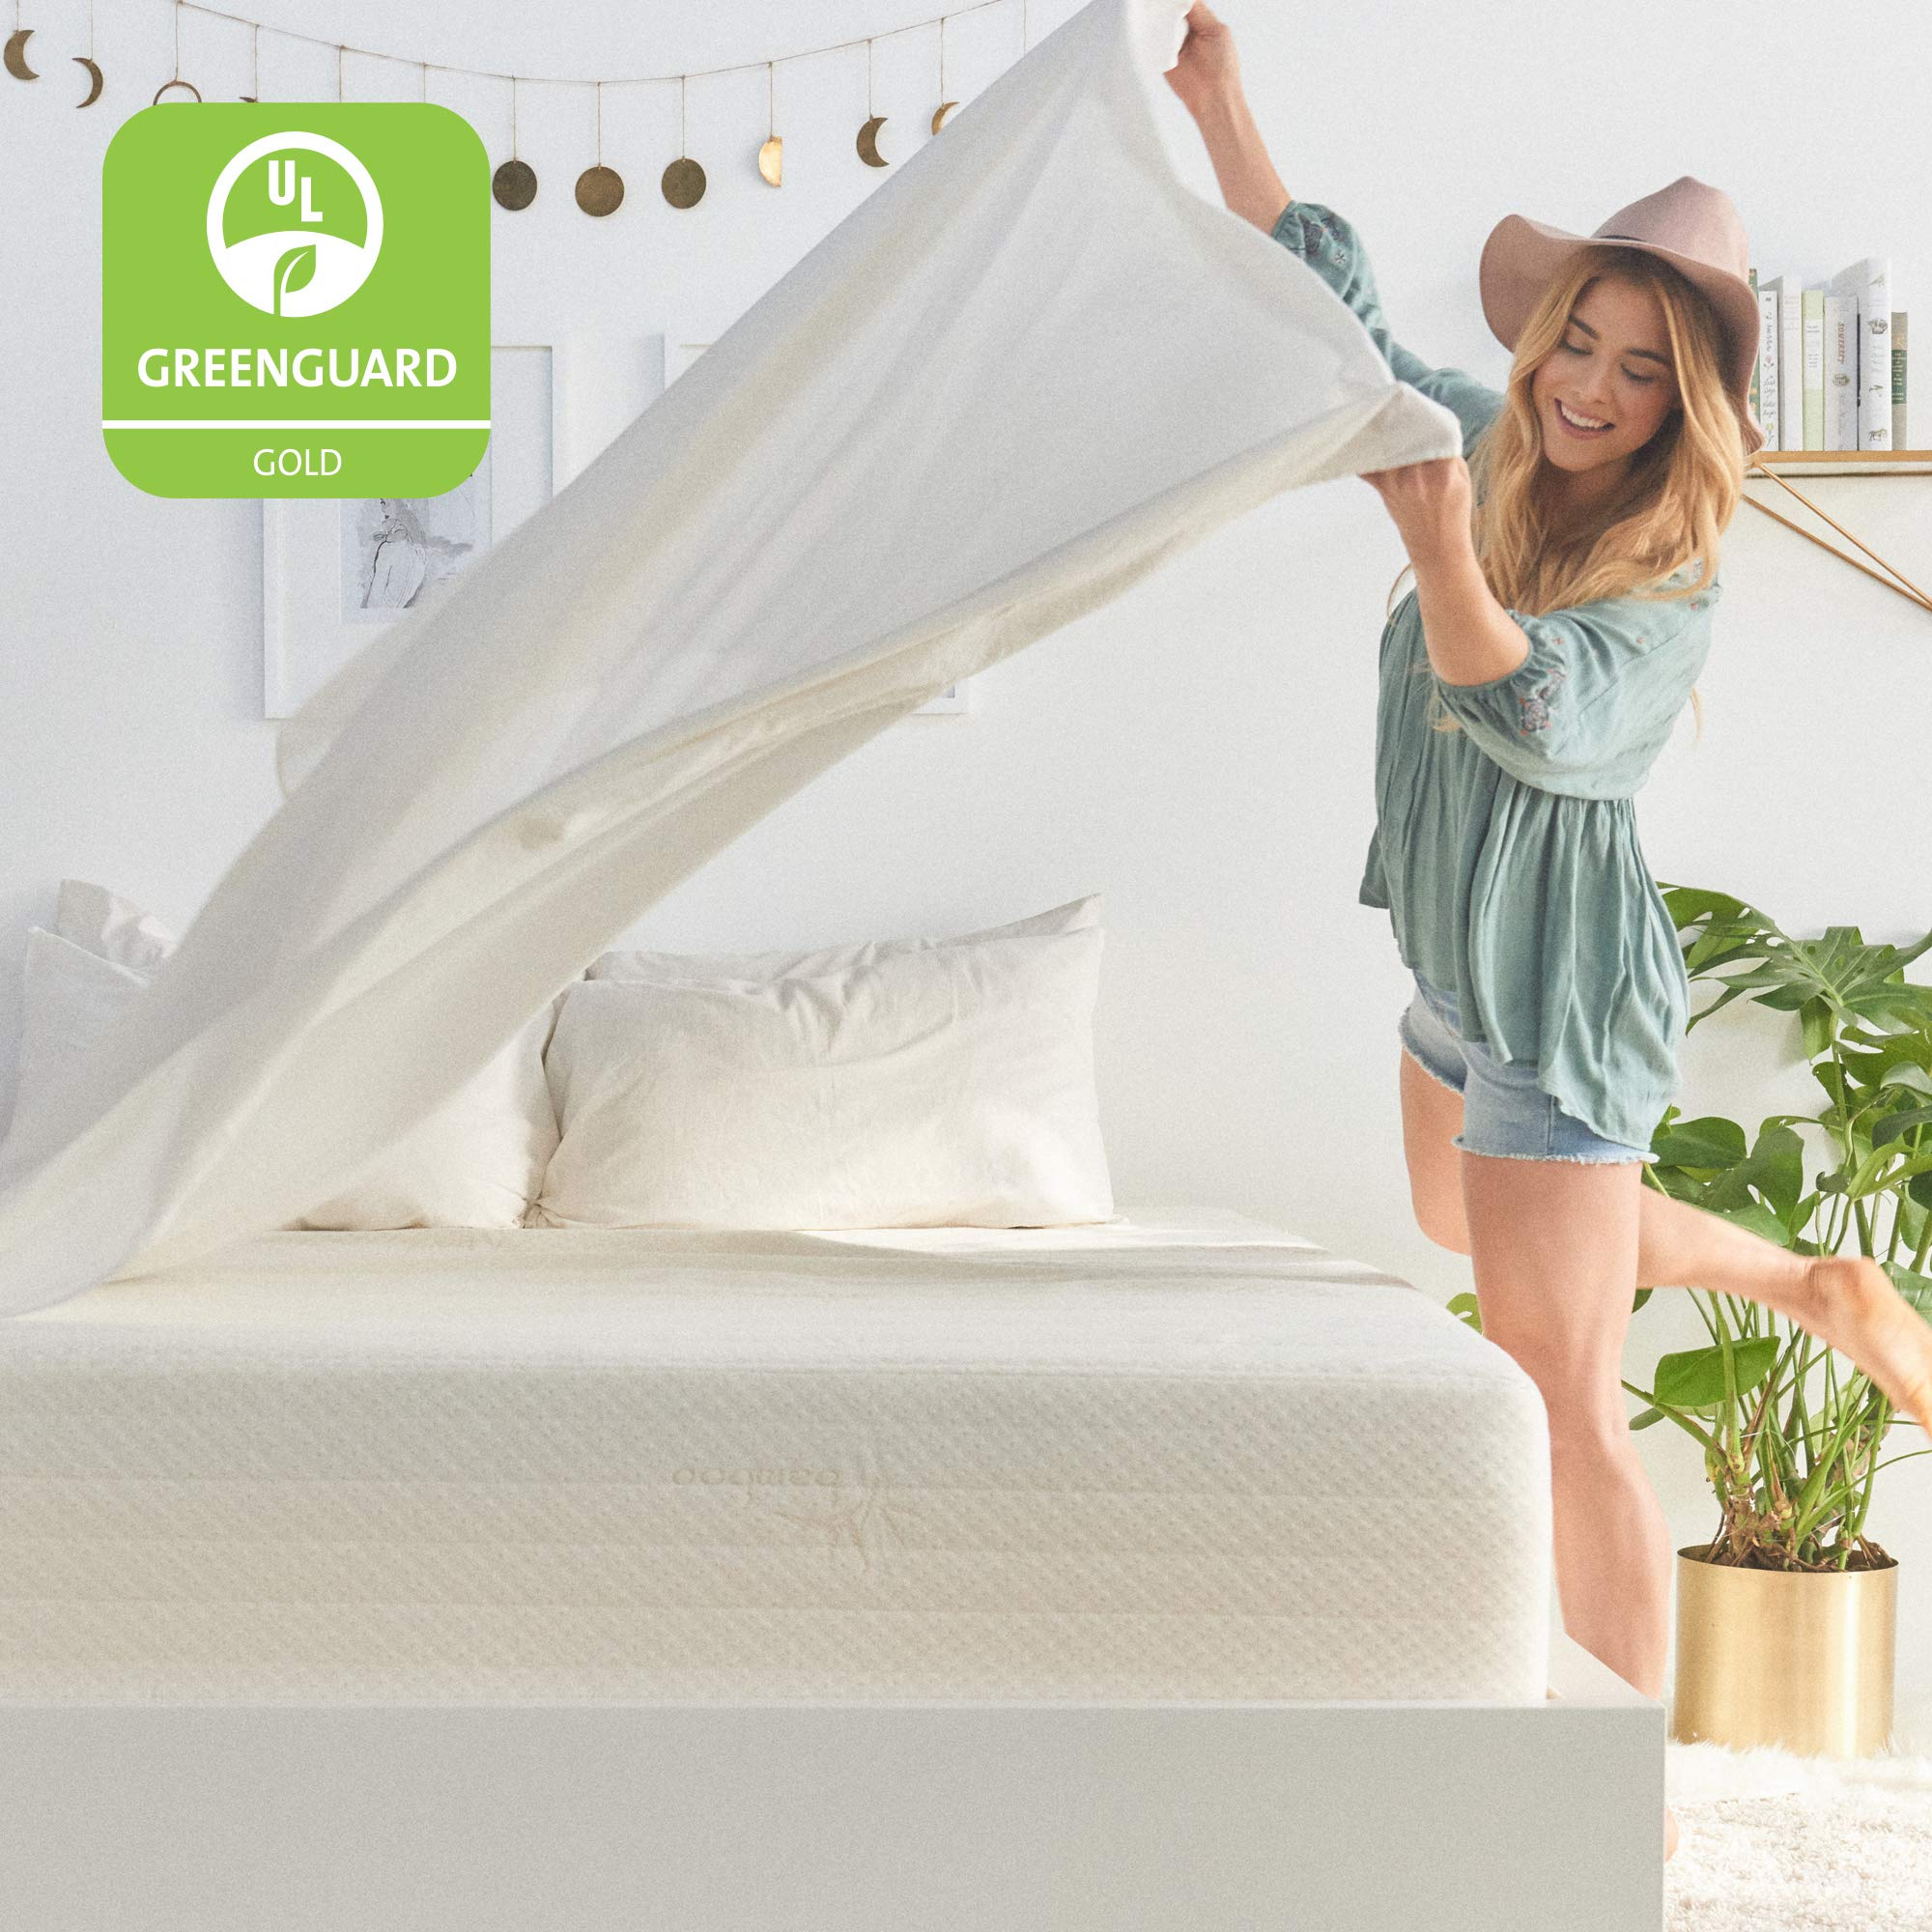 Brentwood Home Cypress Mattress, Greenguard Gold & CertiPUR Certified Non Toxic, Soft Eco Cover, Cool Gel Memory Foam, 25-Year Warranty, Made in California, 13-Inch, Twin XL Size